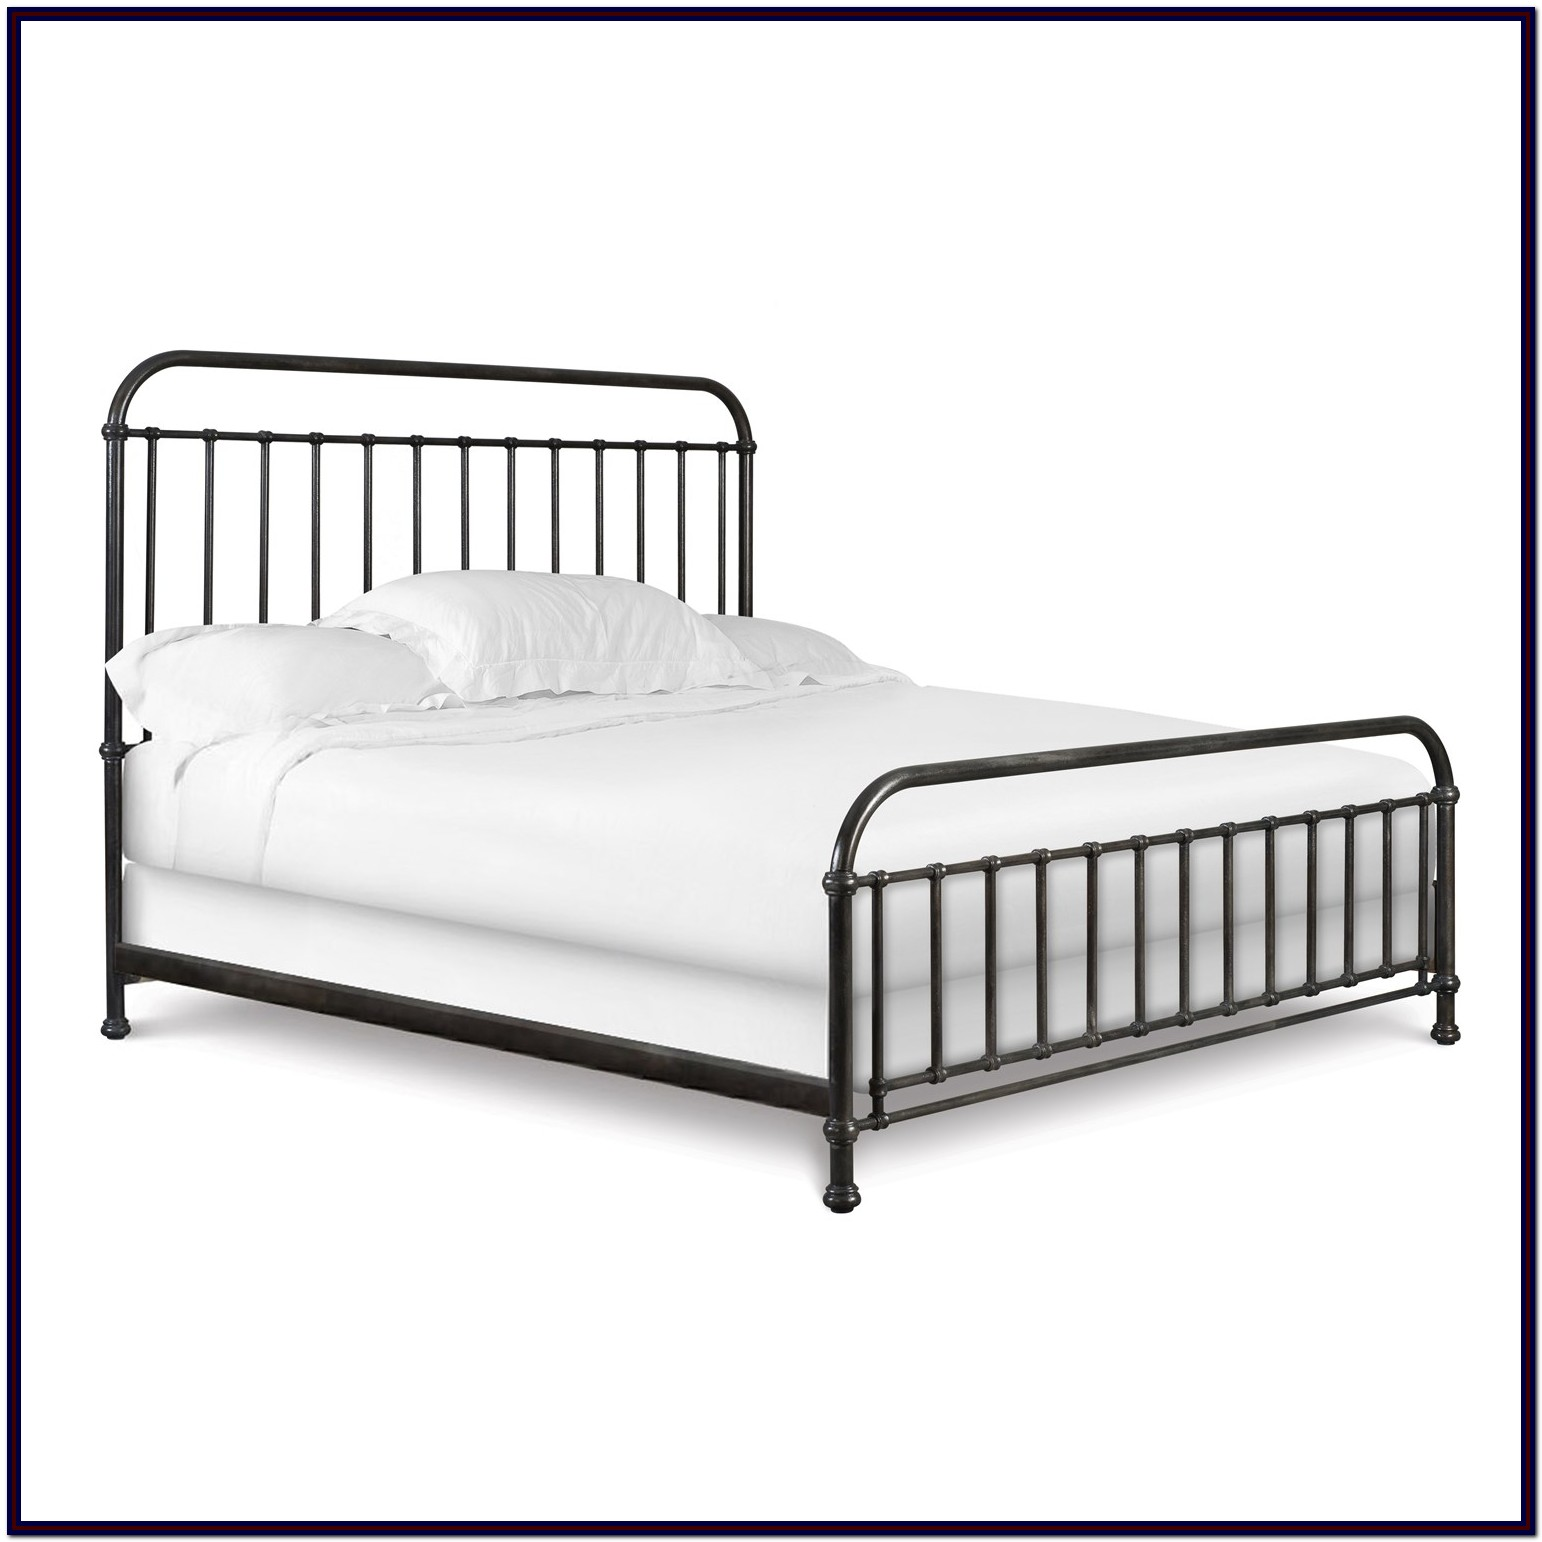 Metal Bed Frame Queen Big Lots